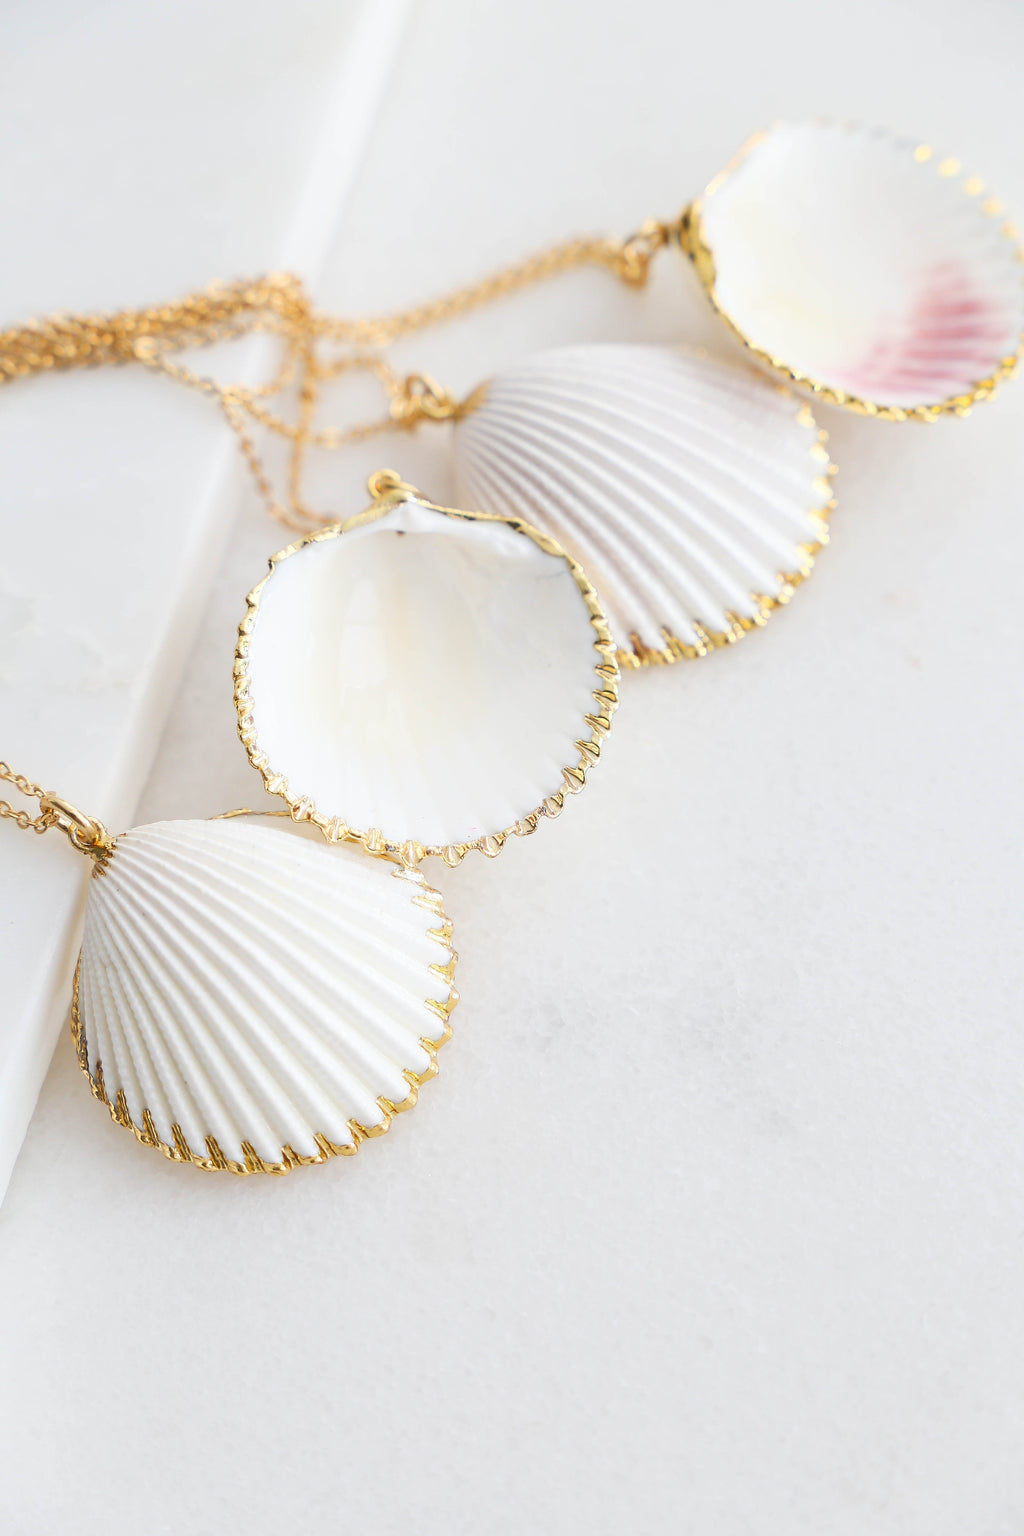 White & Gold Necklace - Boutique Minimaliste